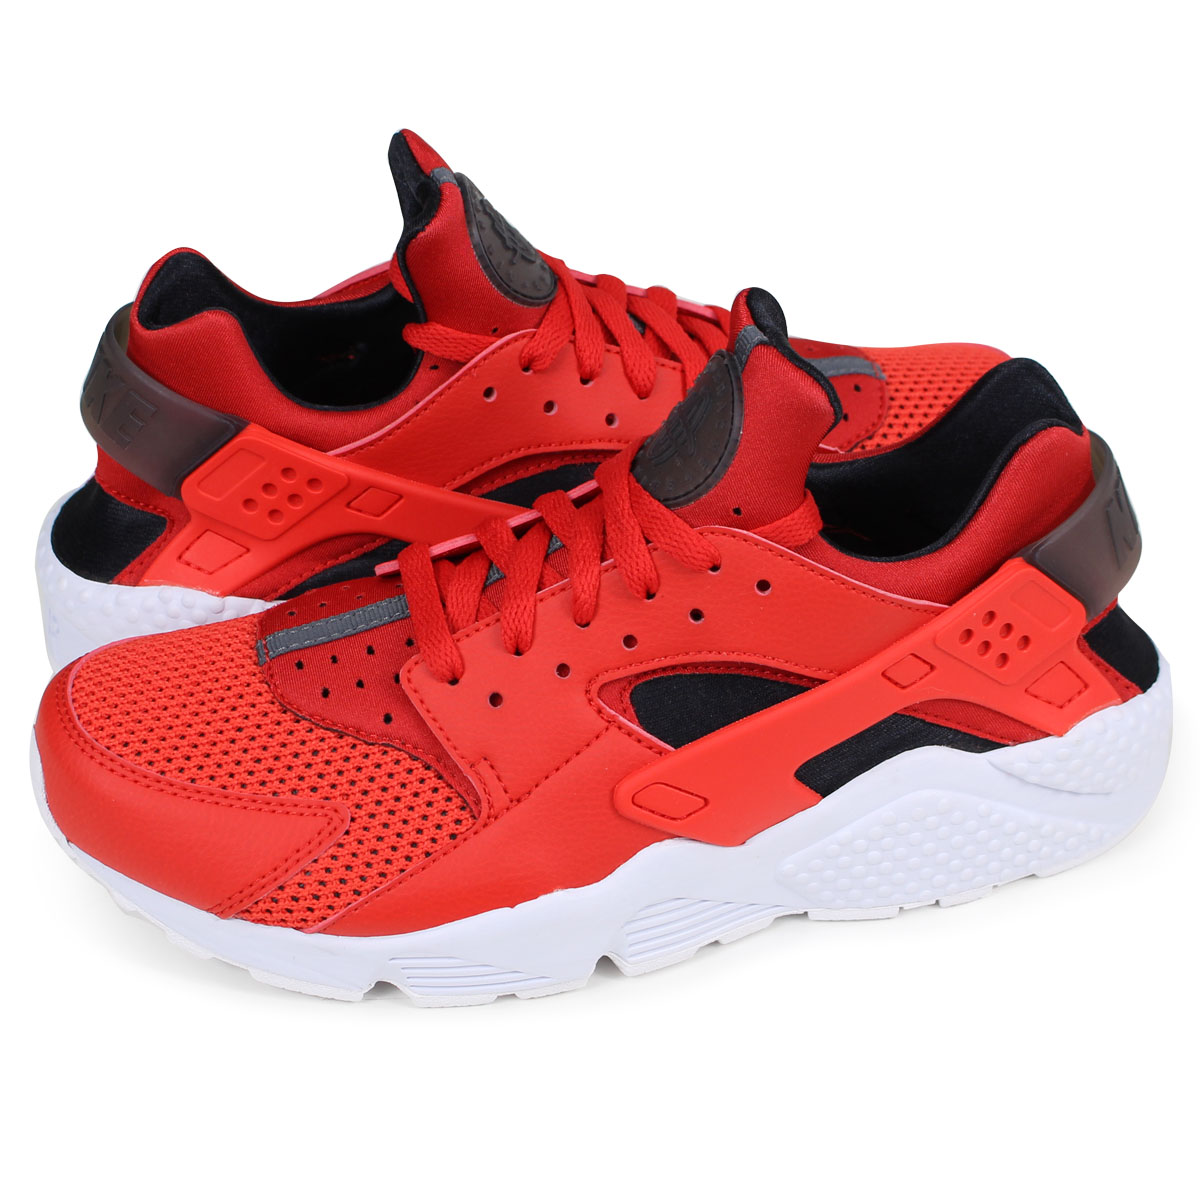 d1d1232fba38 Whats up Sports  NIKE AIR HUARACHE ナイキエアハラチスニーカーメンズ ...